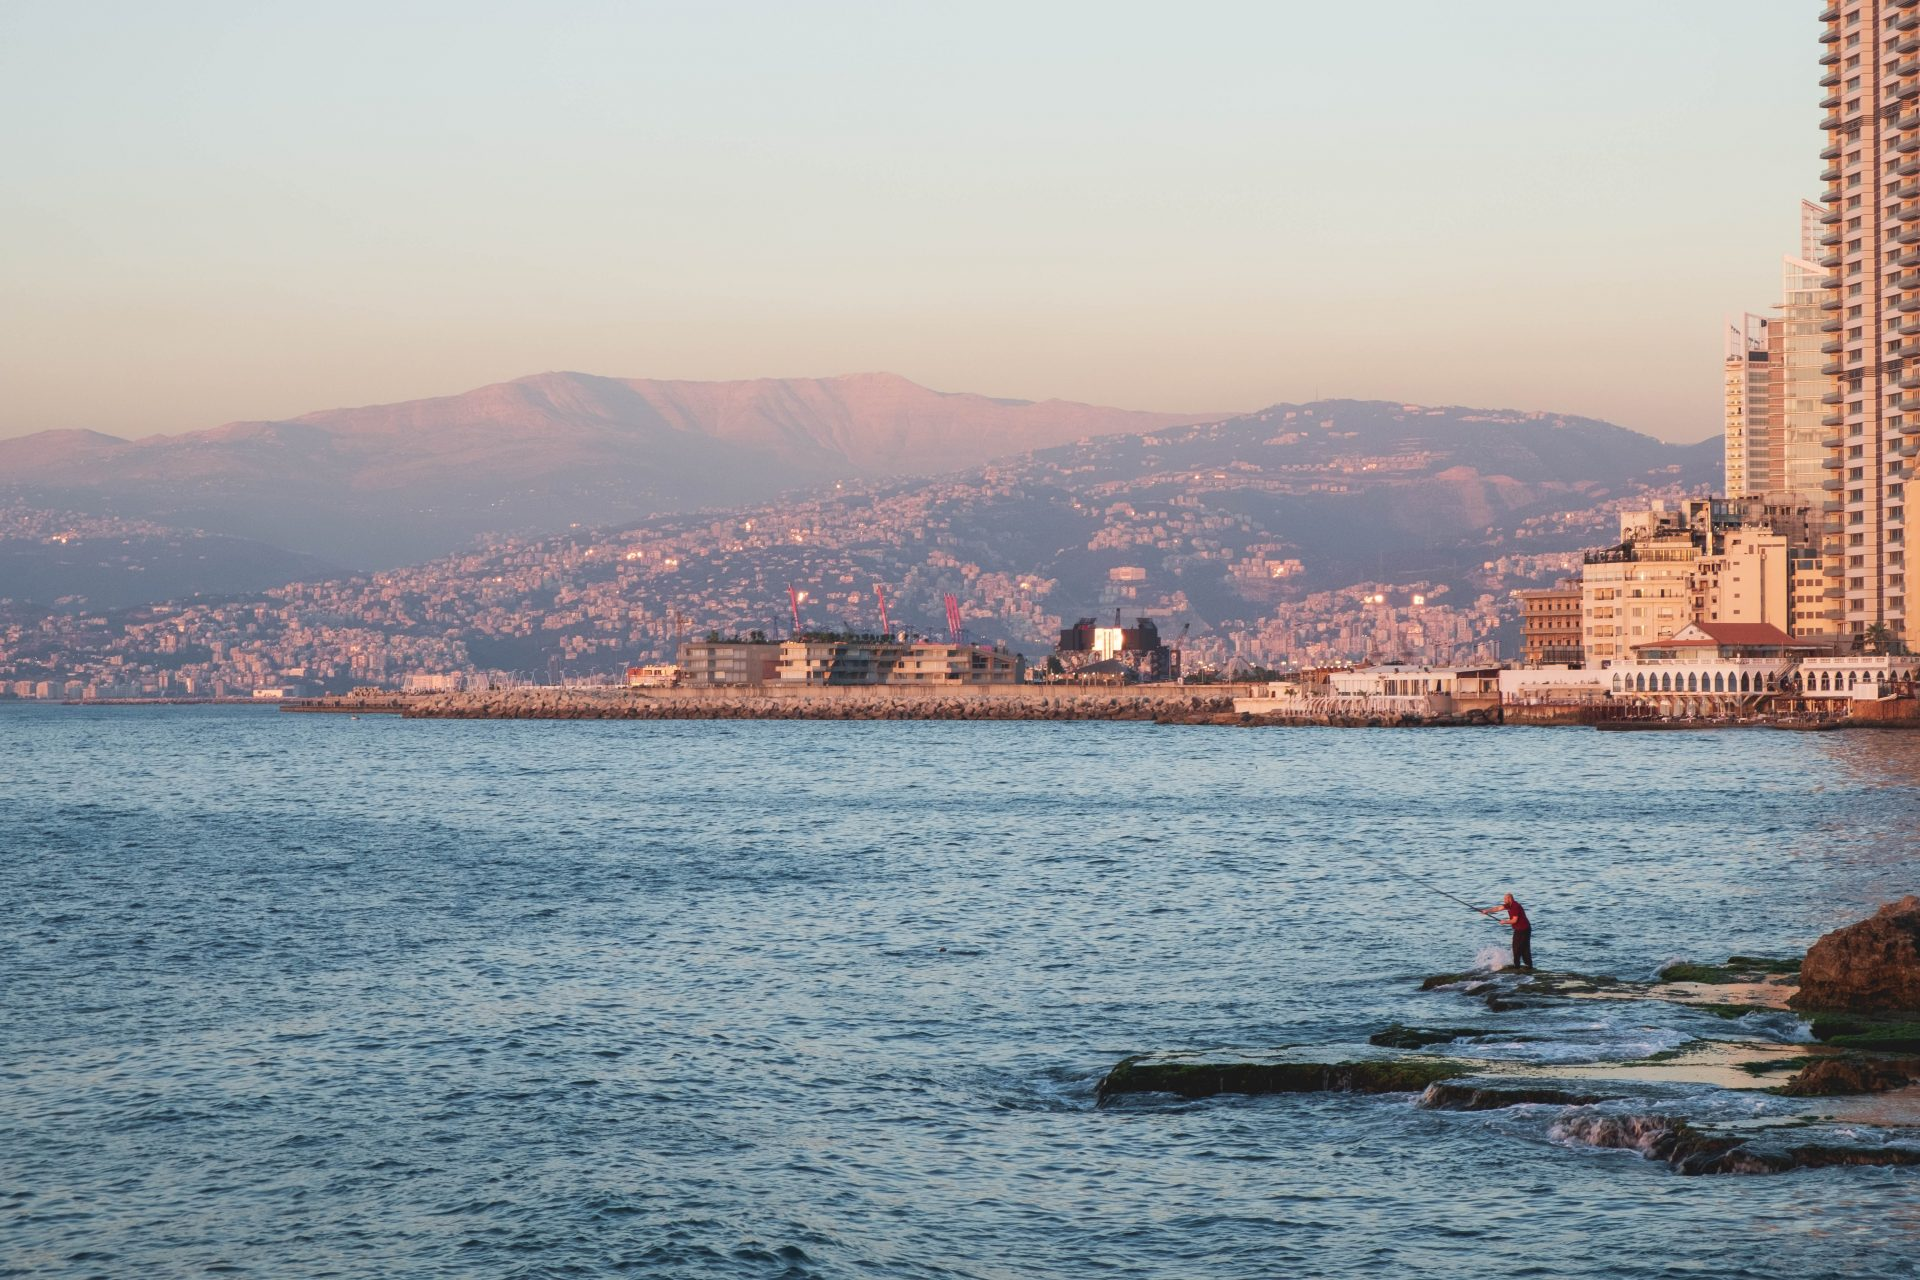 Fisherman in Beirut waterfront area near Raouche photo by Jo Kassis